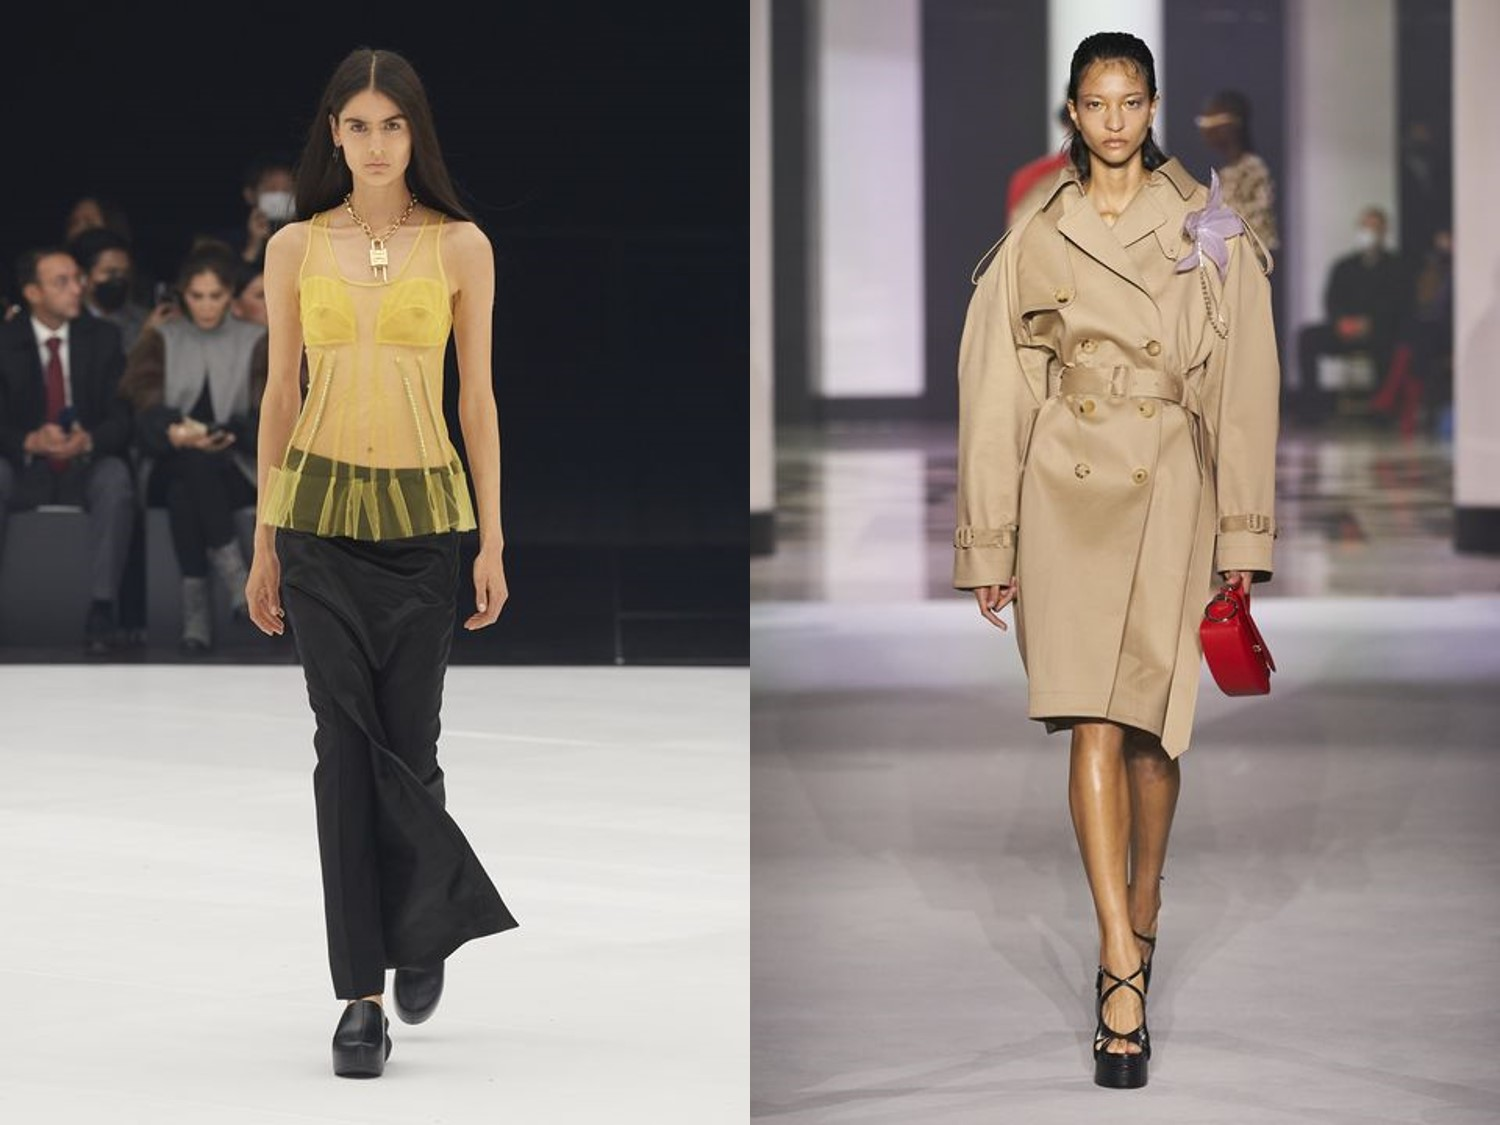 PARIS FASHION WEEK TRENDS: Past and Future Synergy